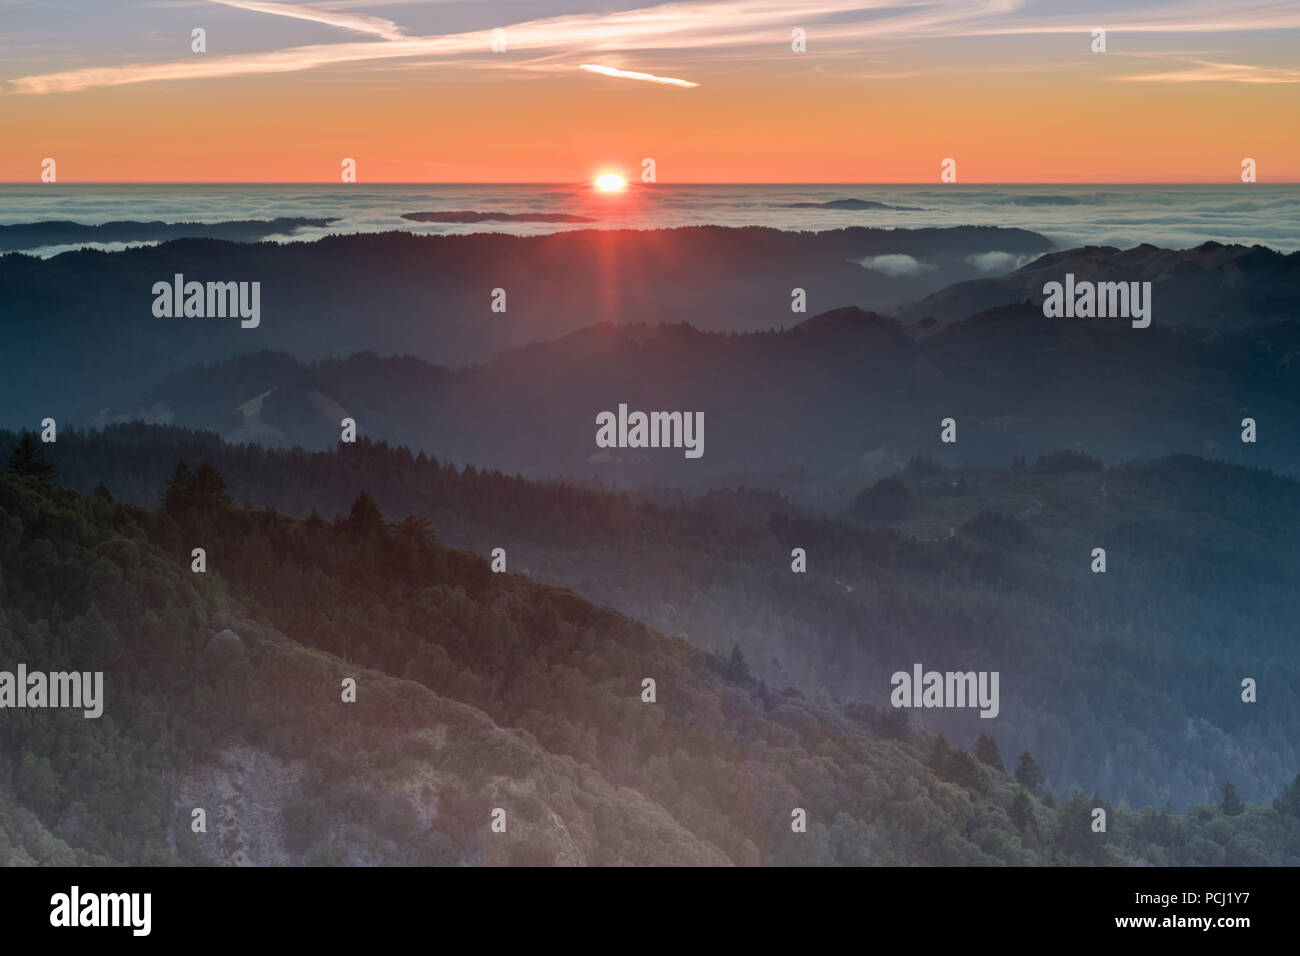 Mount tam is one of my favorite bay area photo spots for obvious reasons. Sunset Views Of Marin County Hills From Mount Tamalpais East Peak Stock Photo Alamy